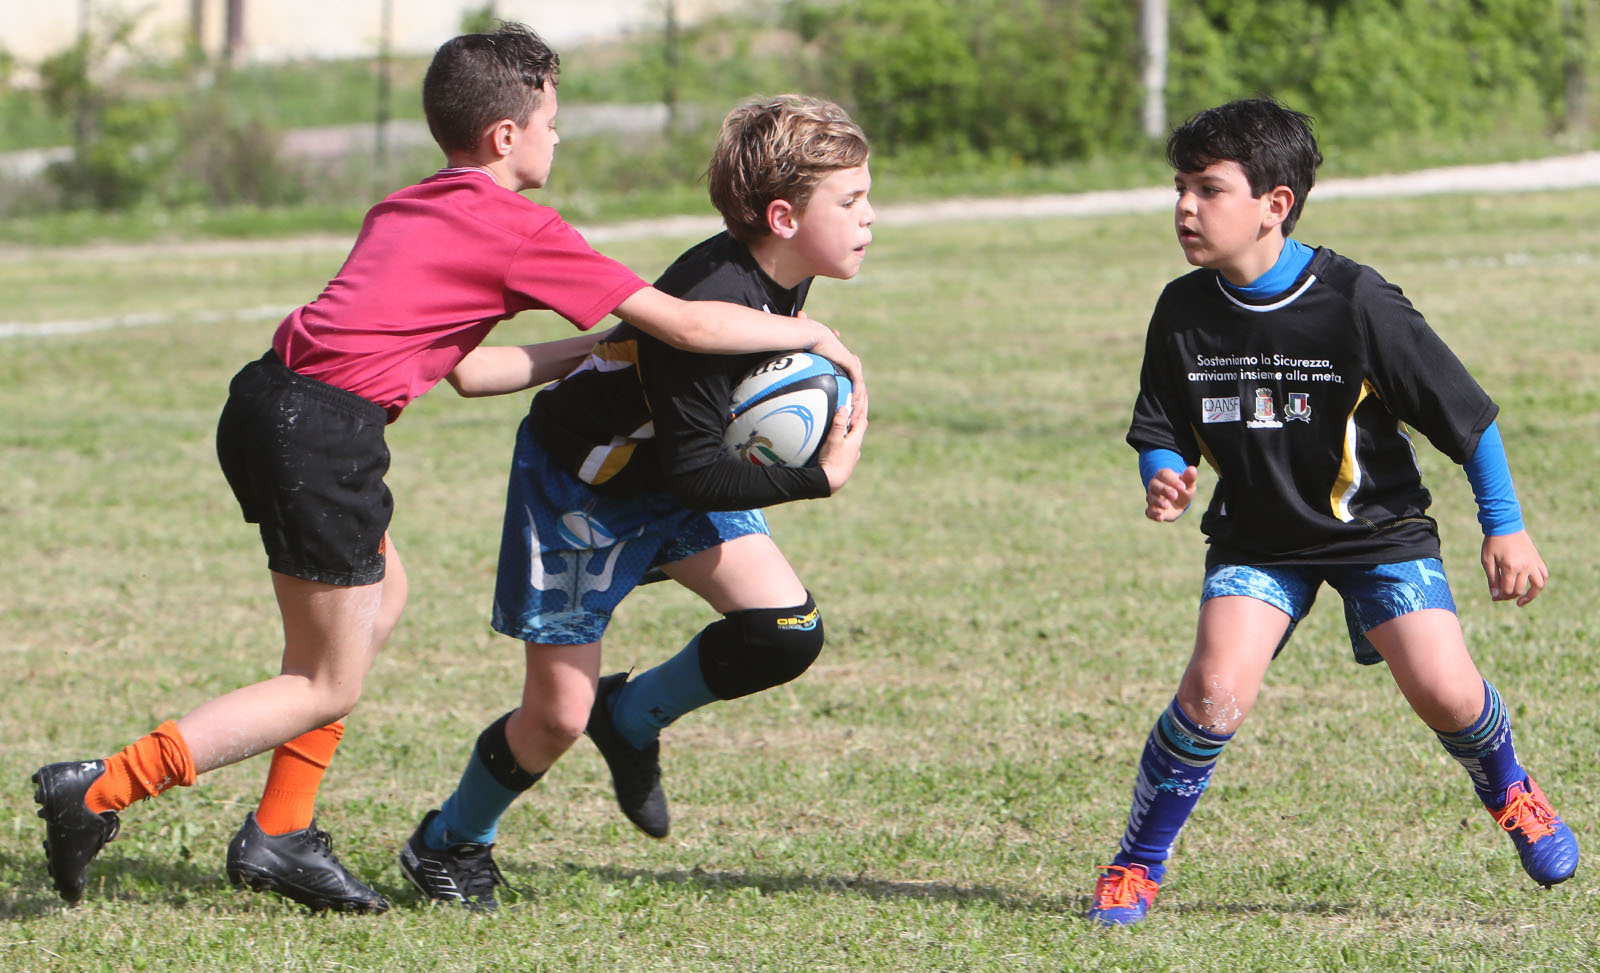 feste rugby 2019 bambini